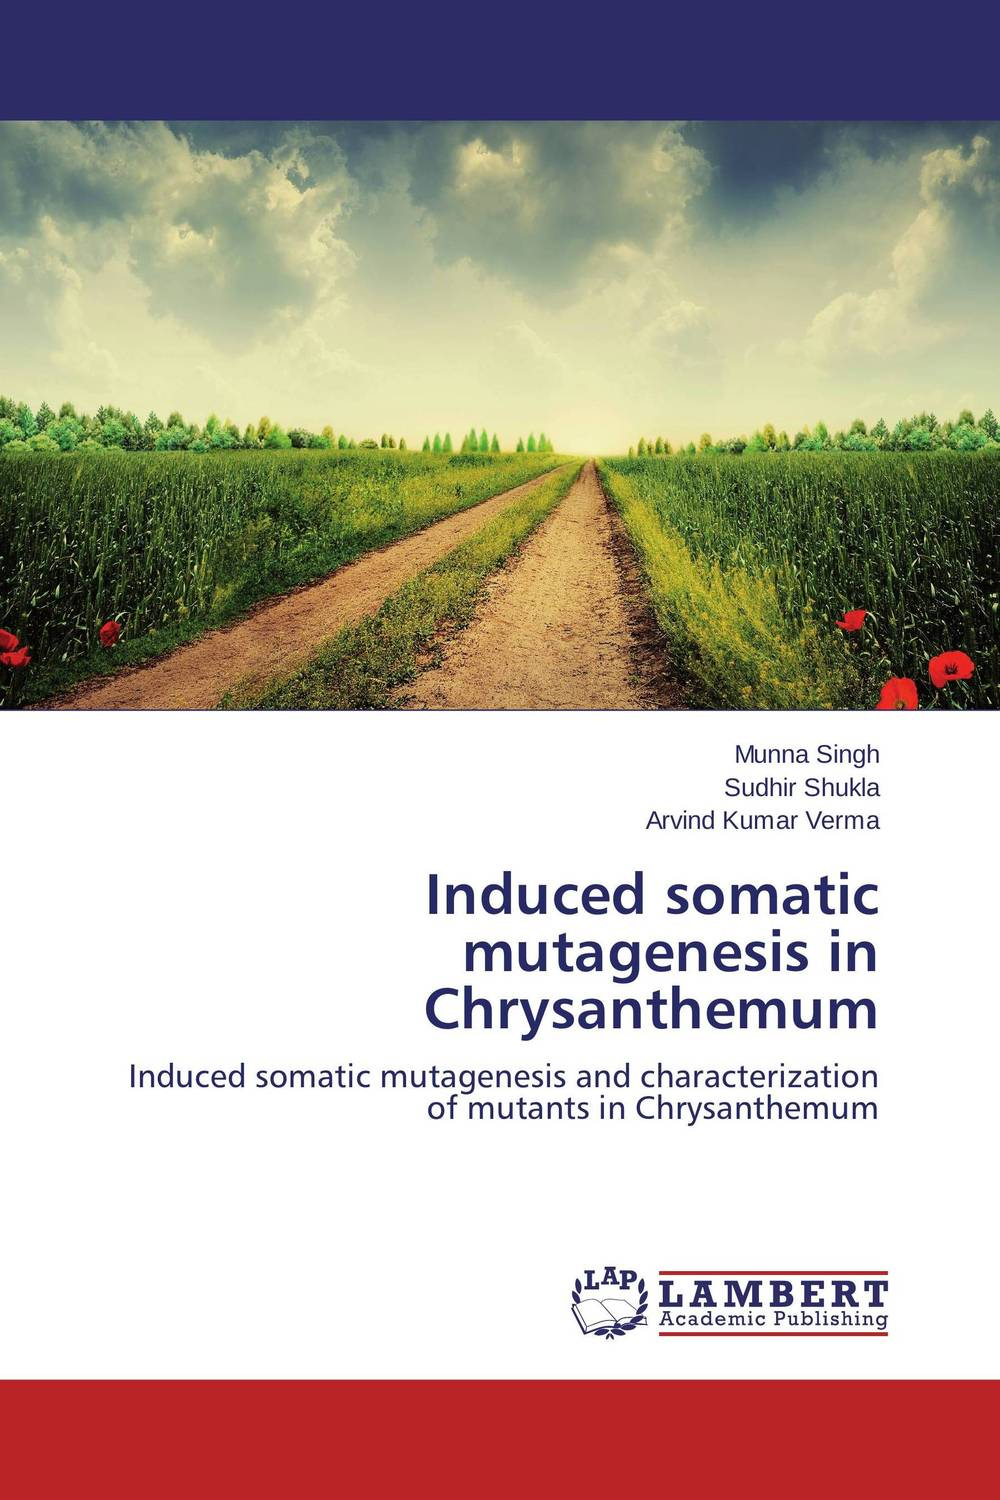 Induced somatic mutagenesis in Chrysanthemum augmented cellulase production by mutagenesis of trichoderma viride